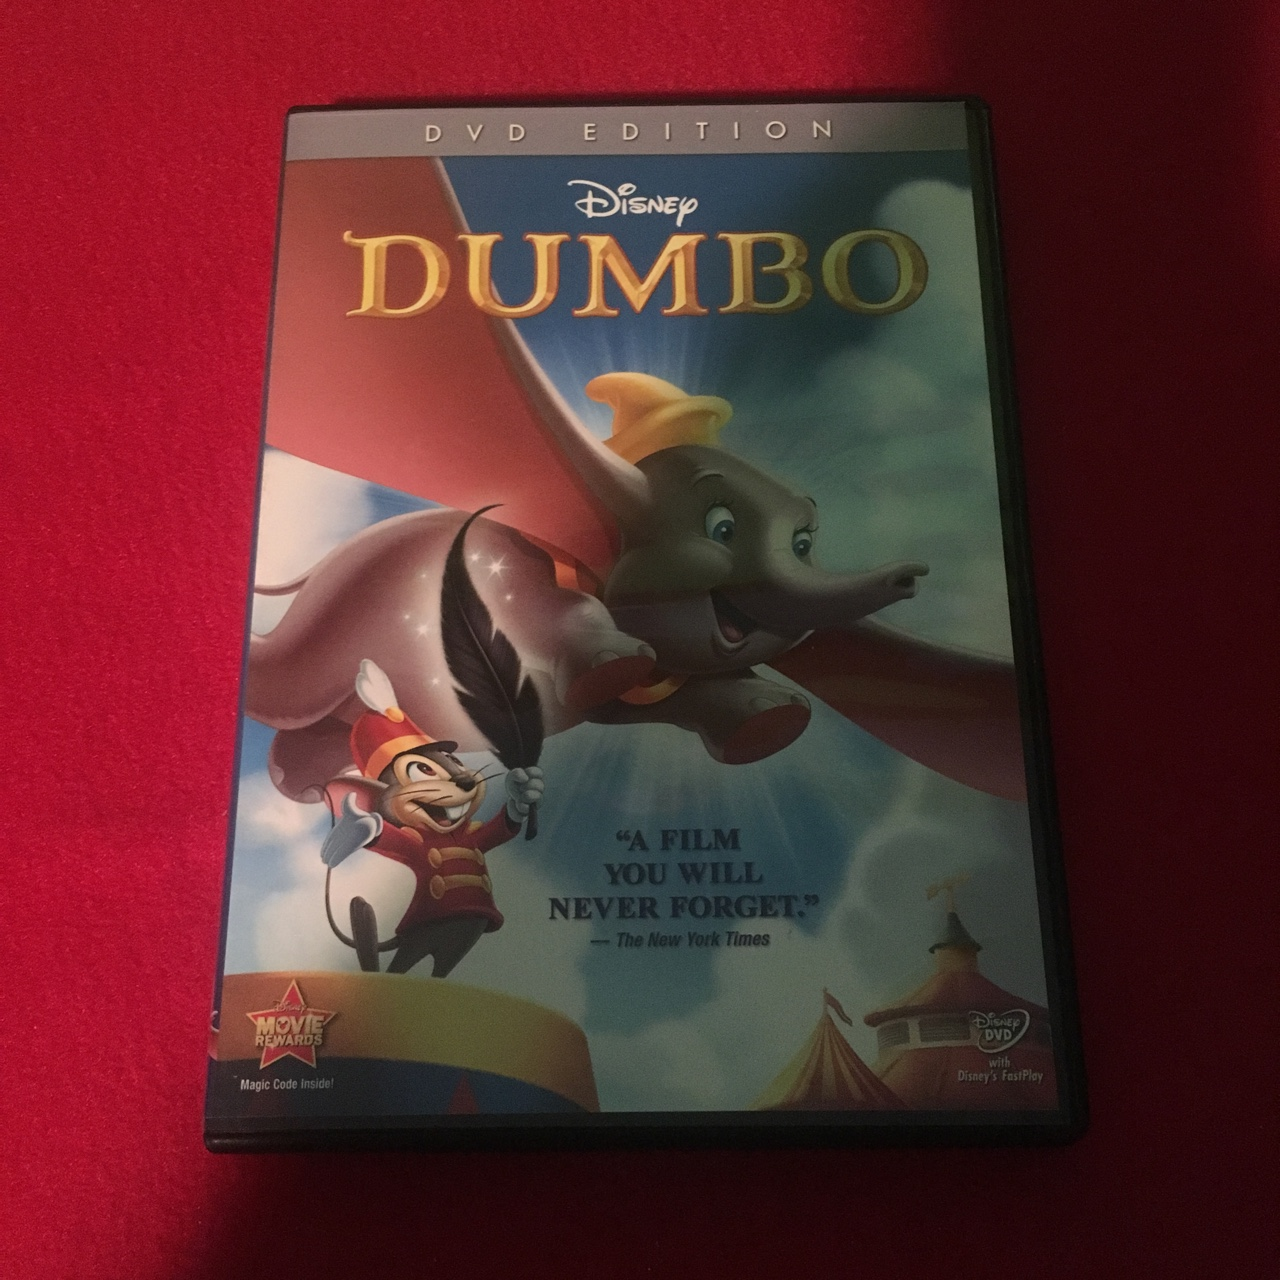 Disney's Dumbo DVD. Perfect condition. Price listed... - Depop